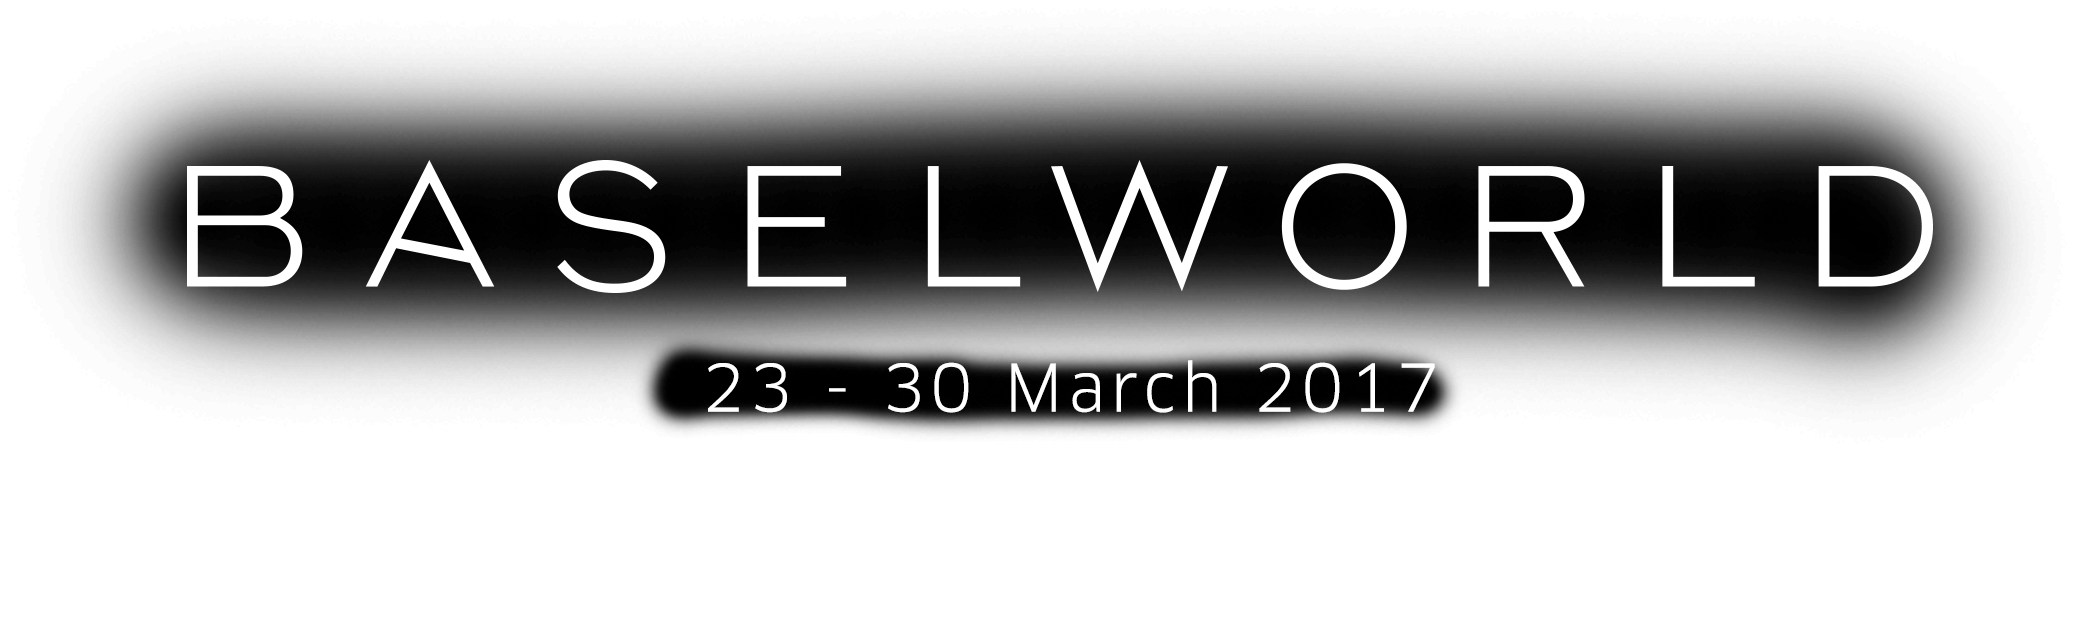 BaselWorld - 23 - 30 March 2017